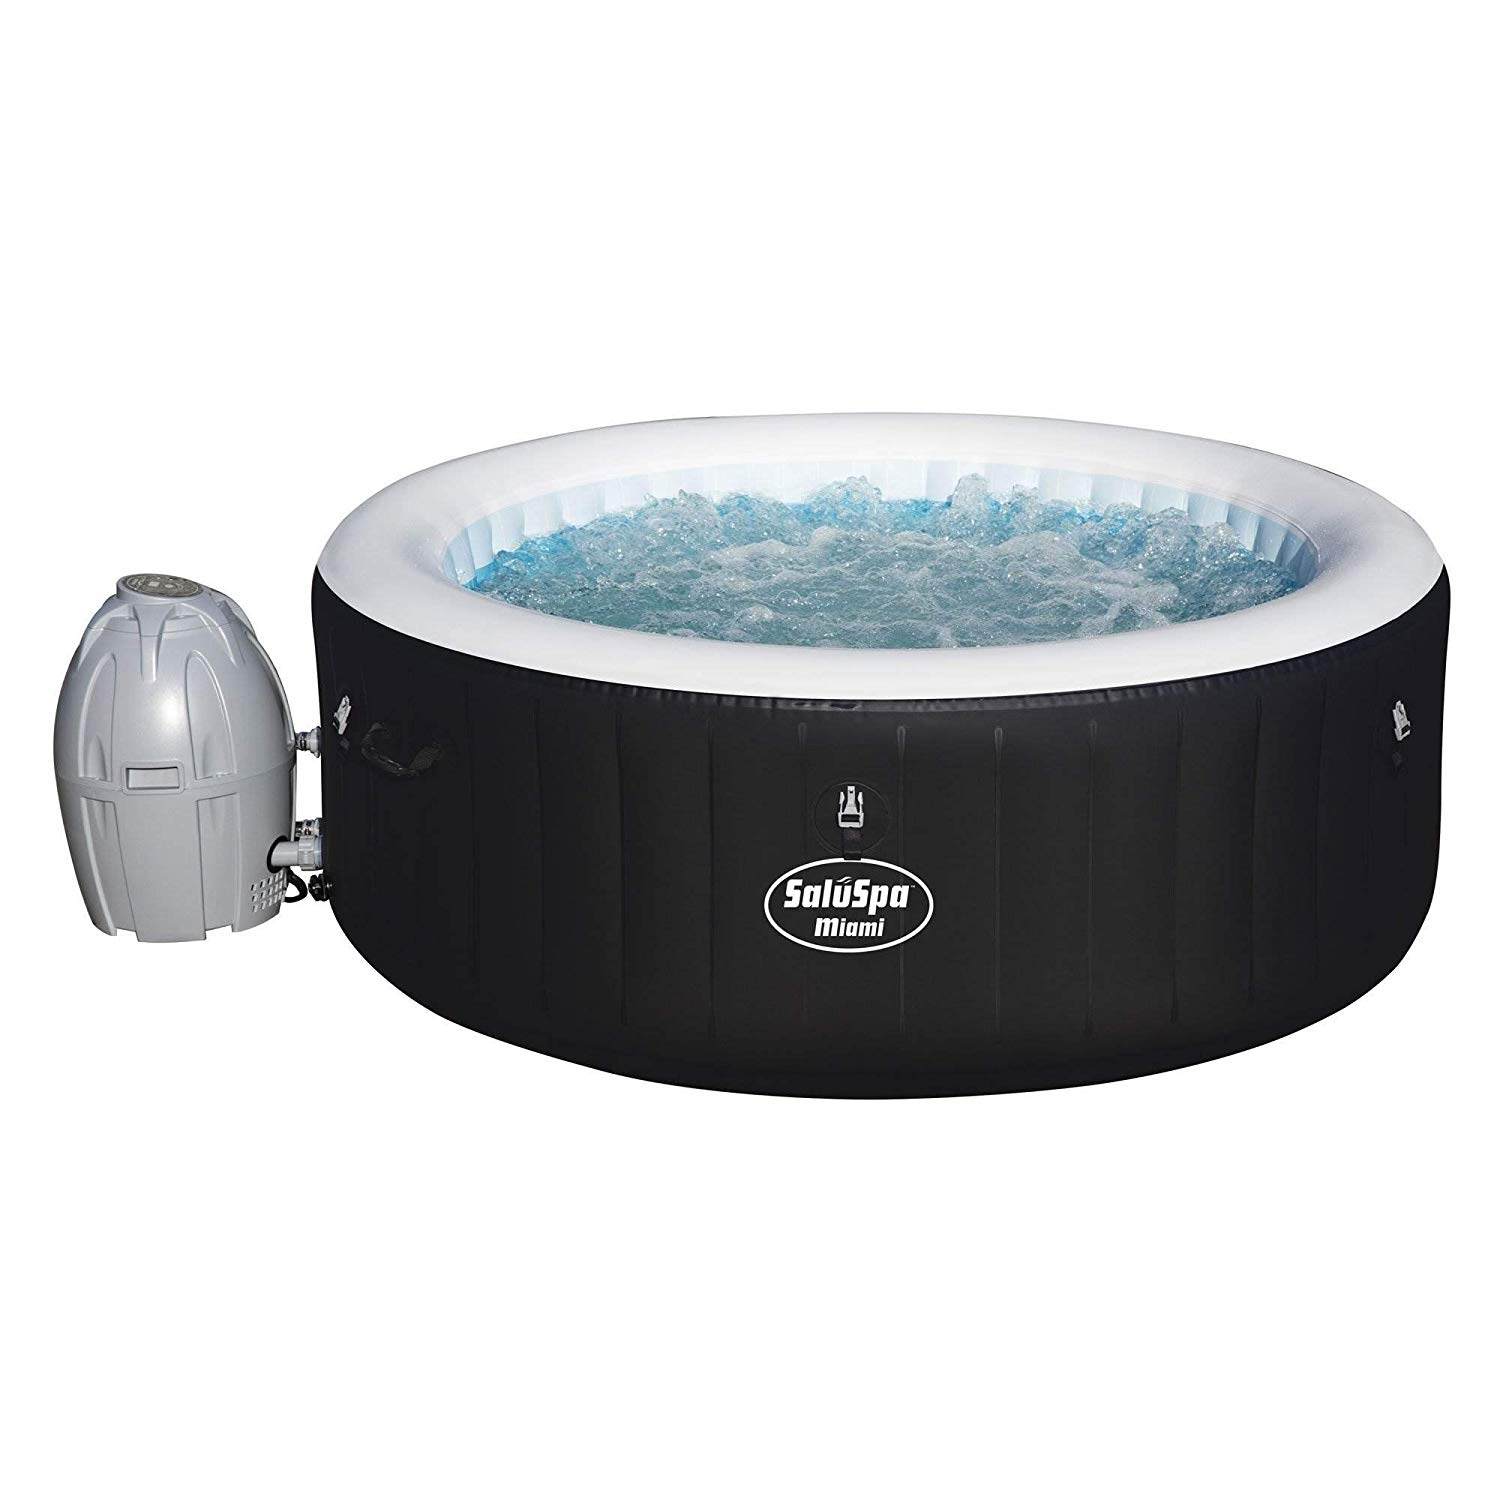 Bestway Hot Tub, Miami (4-person)